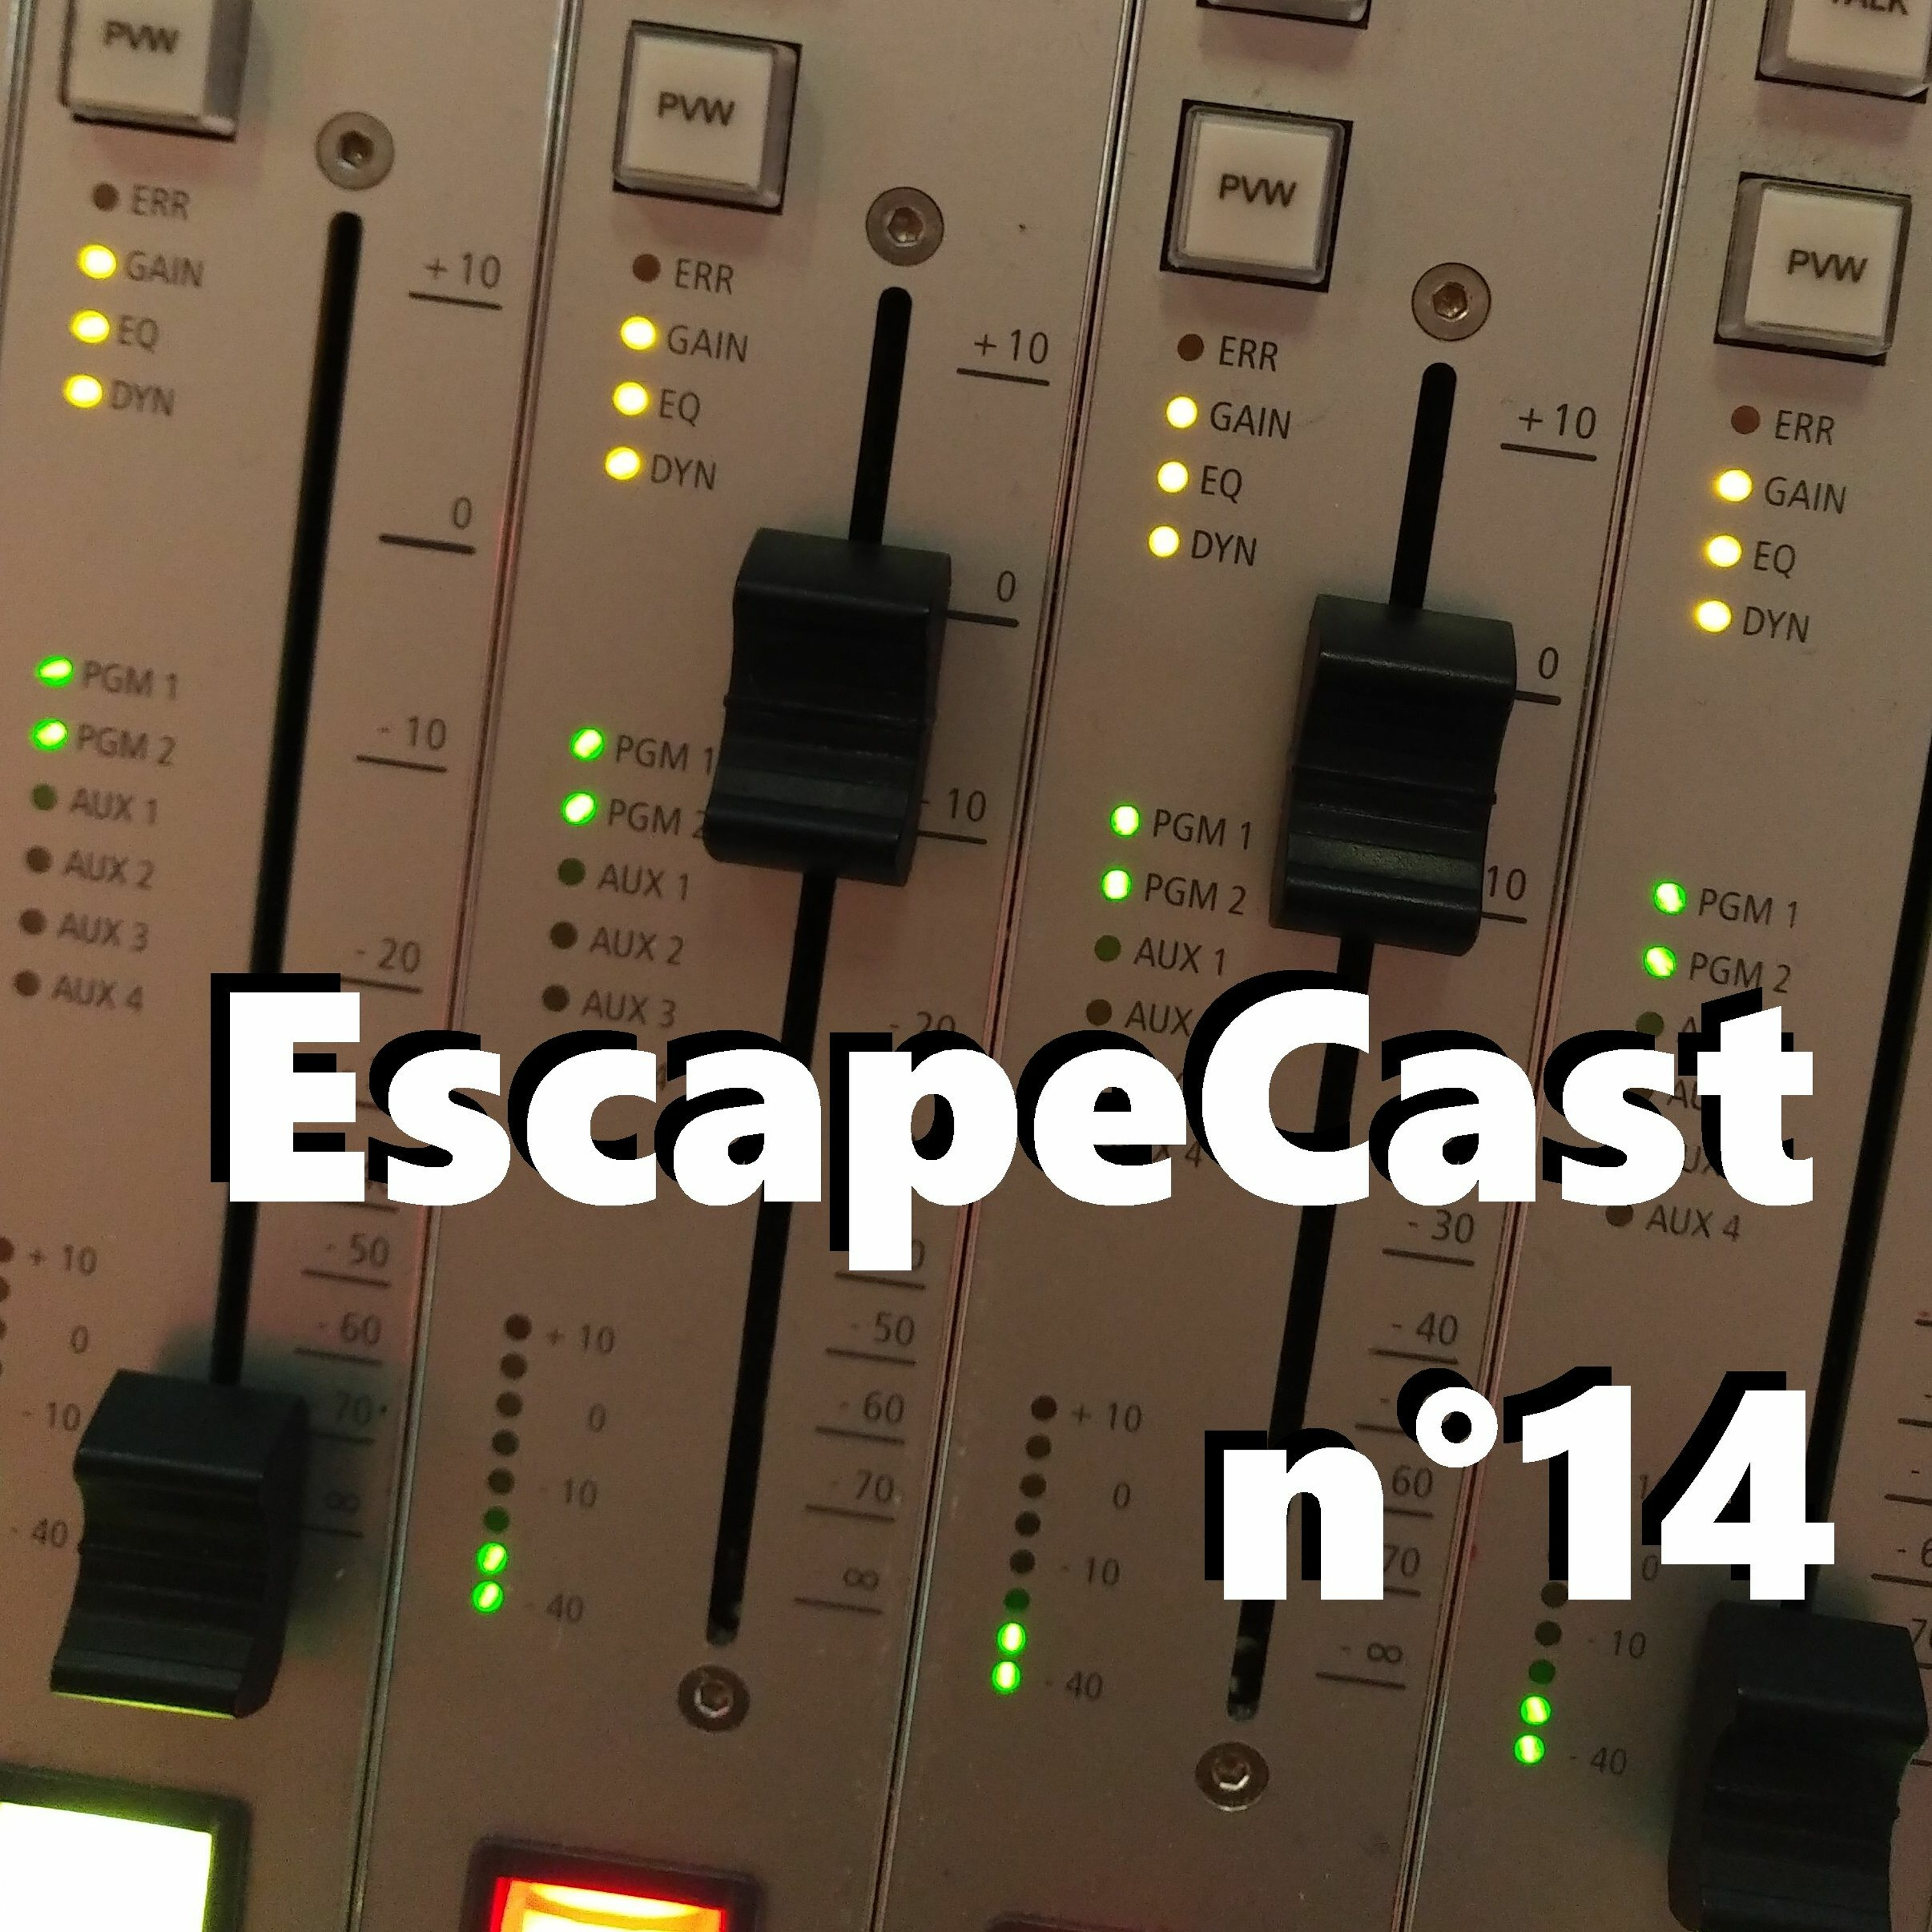 EscapeCast n°14 – Tour des France des enseignes d'escape confinées (part II)